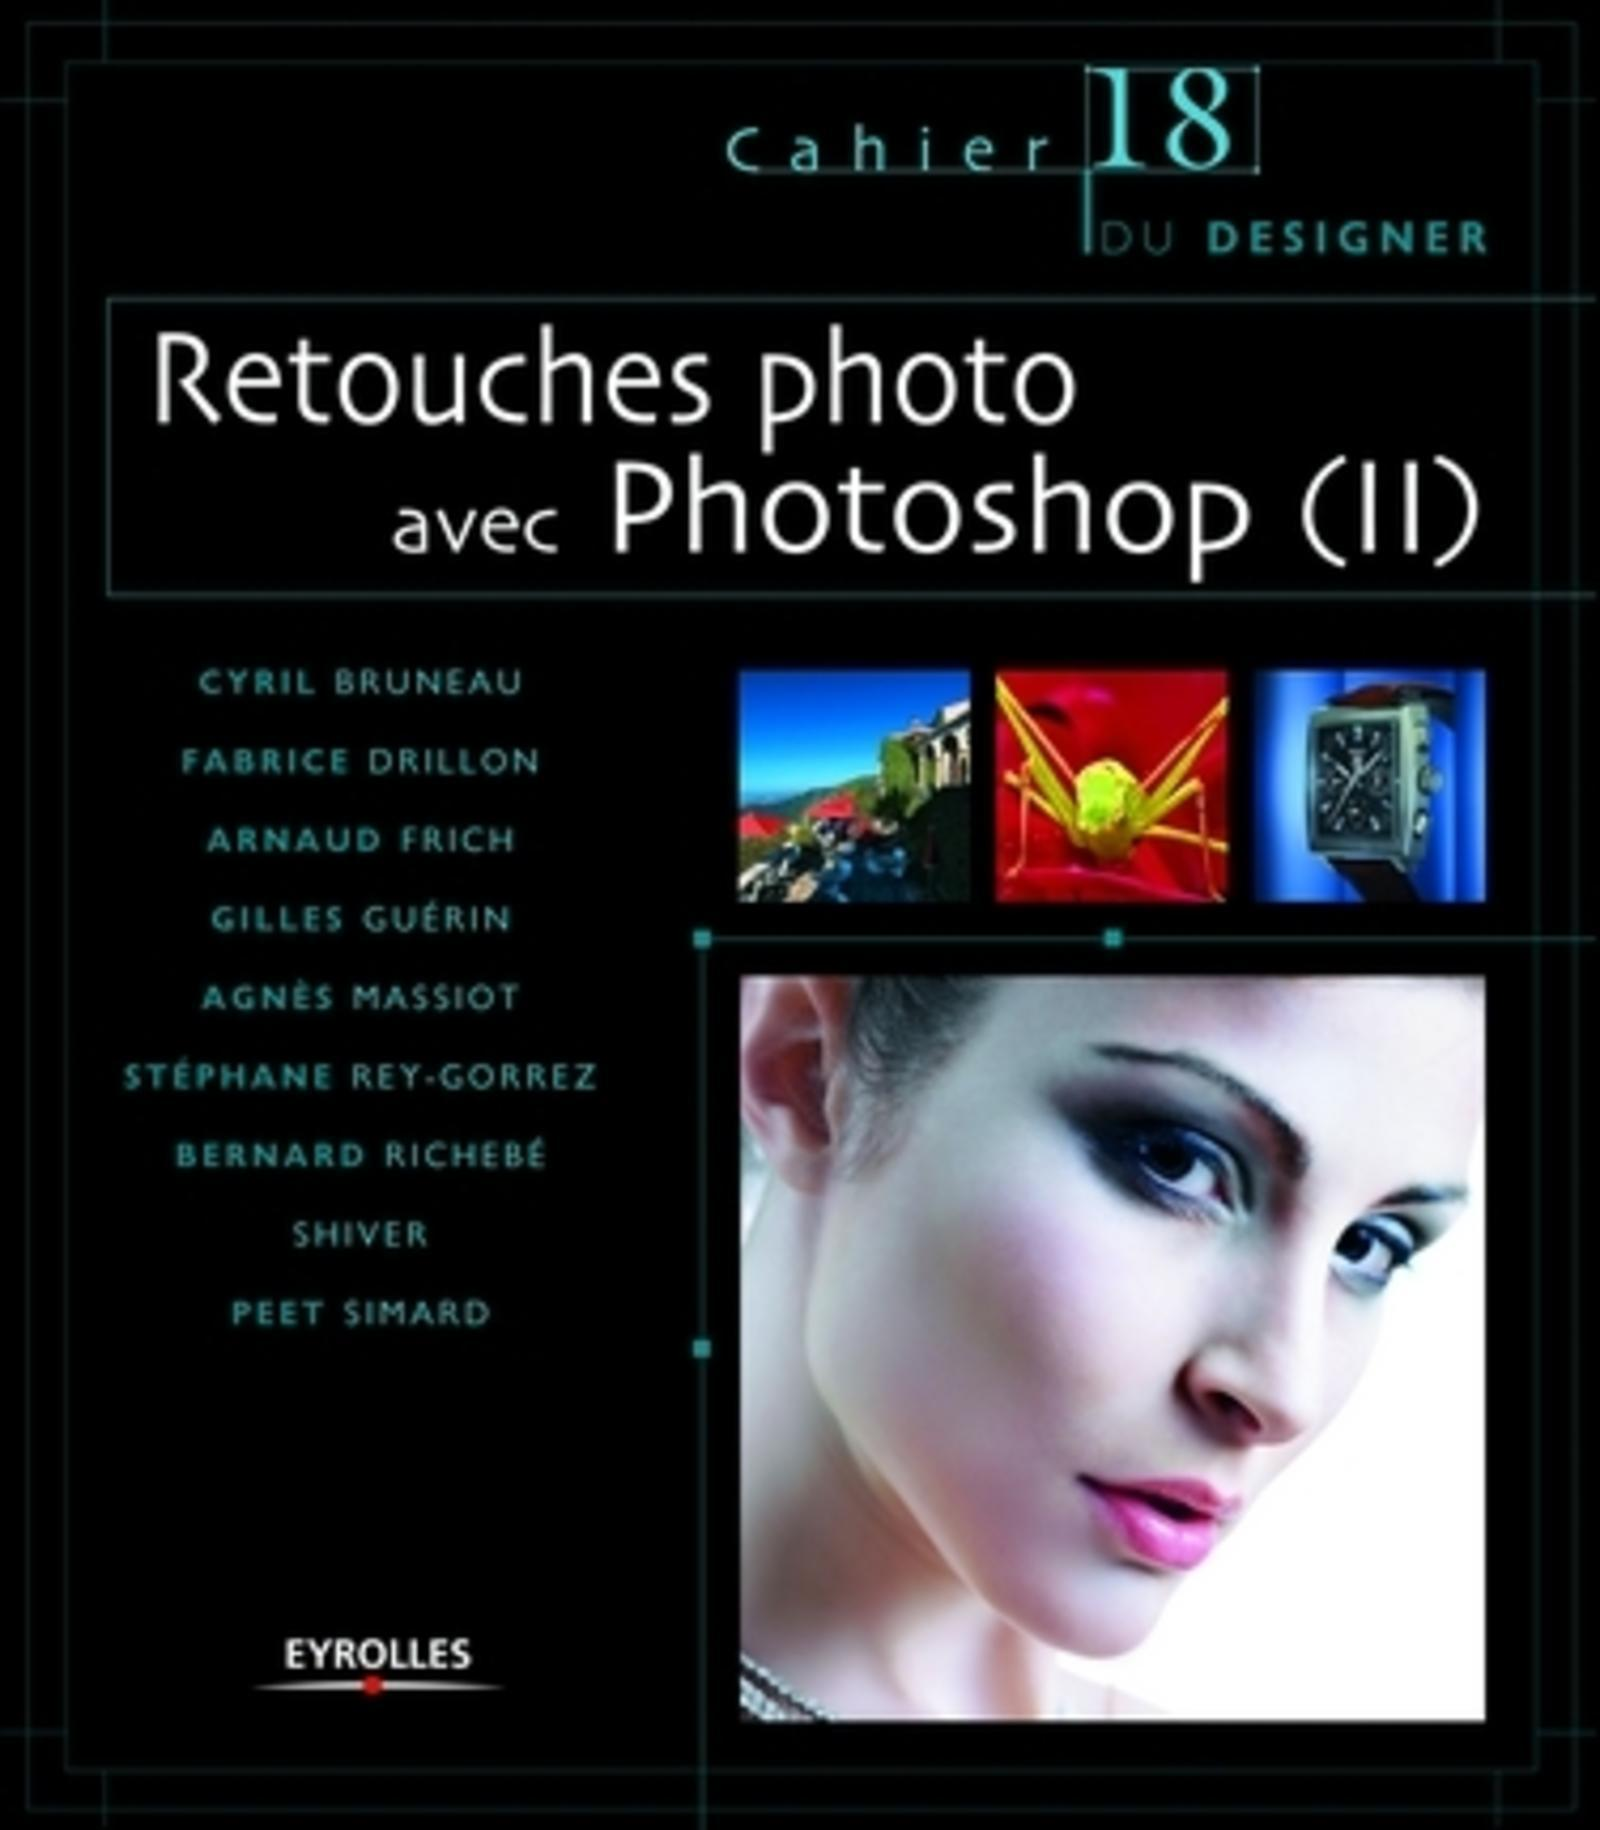 RETOUCHES PHOTO AVEC PHOTOSHOP (II) CAHIER 18